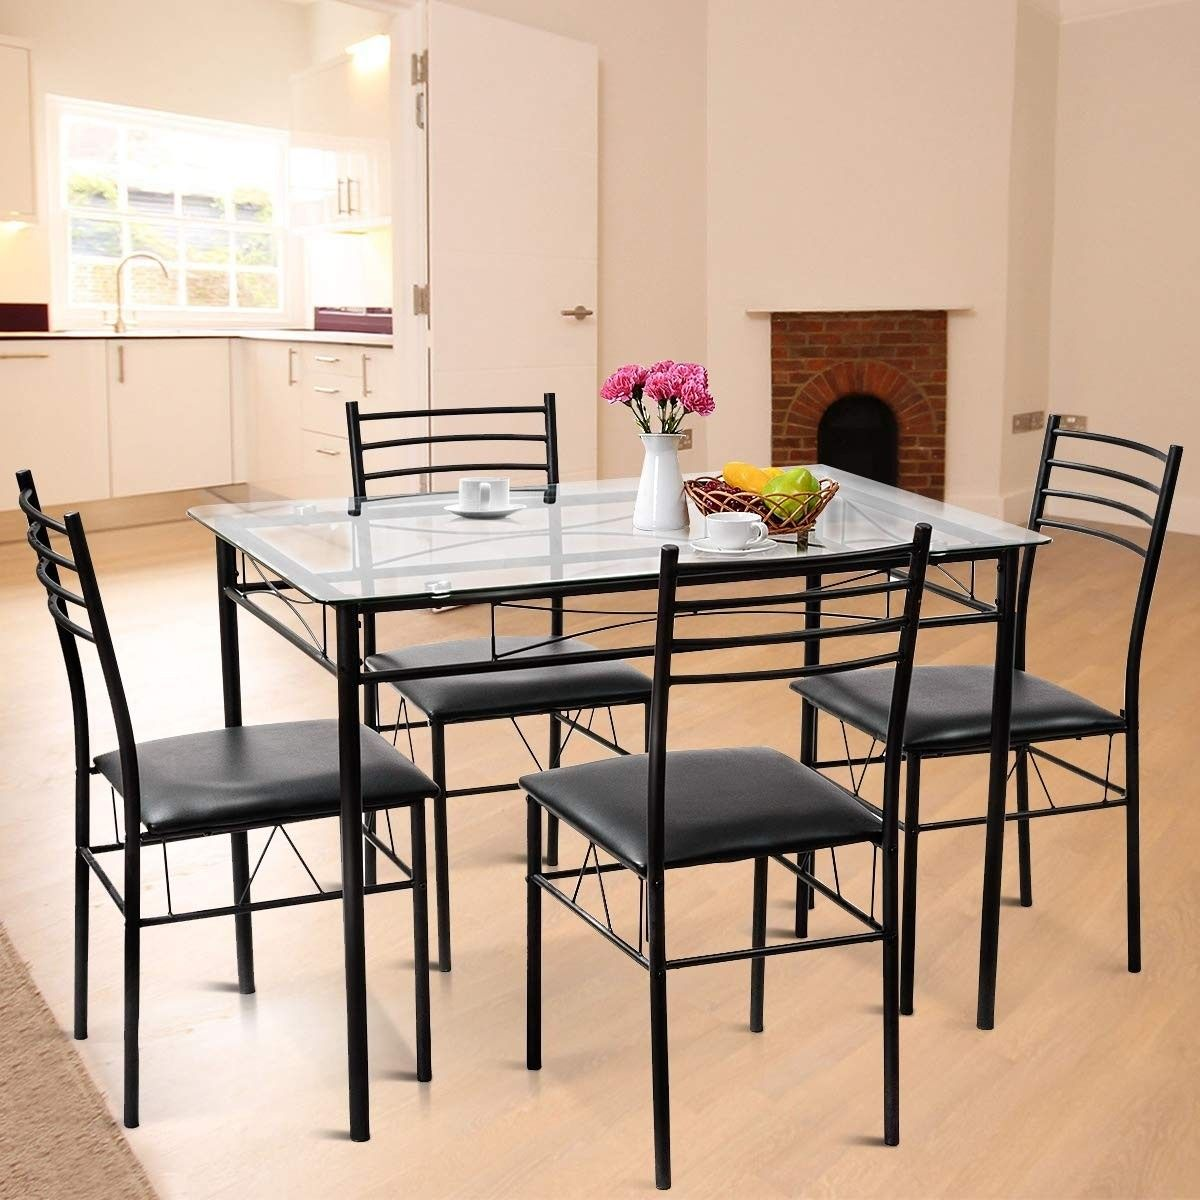 5 Pieces Dining Set Tempered Glass Top Table 4 Upholstered